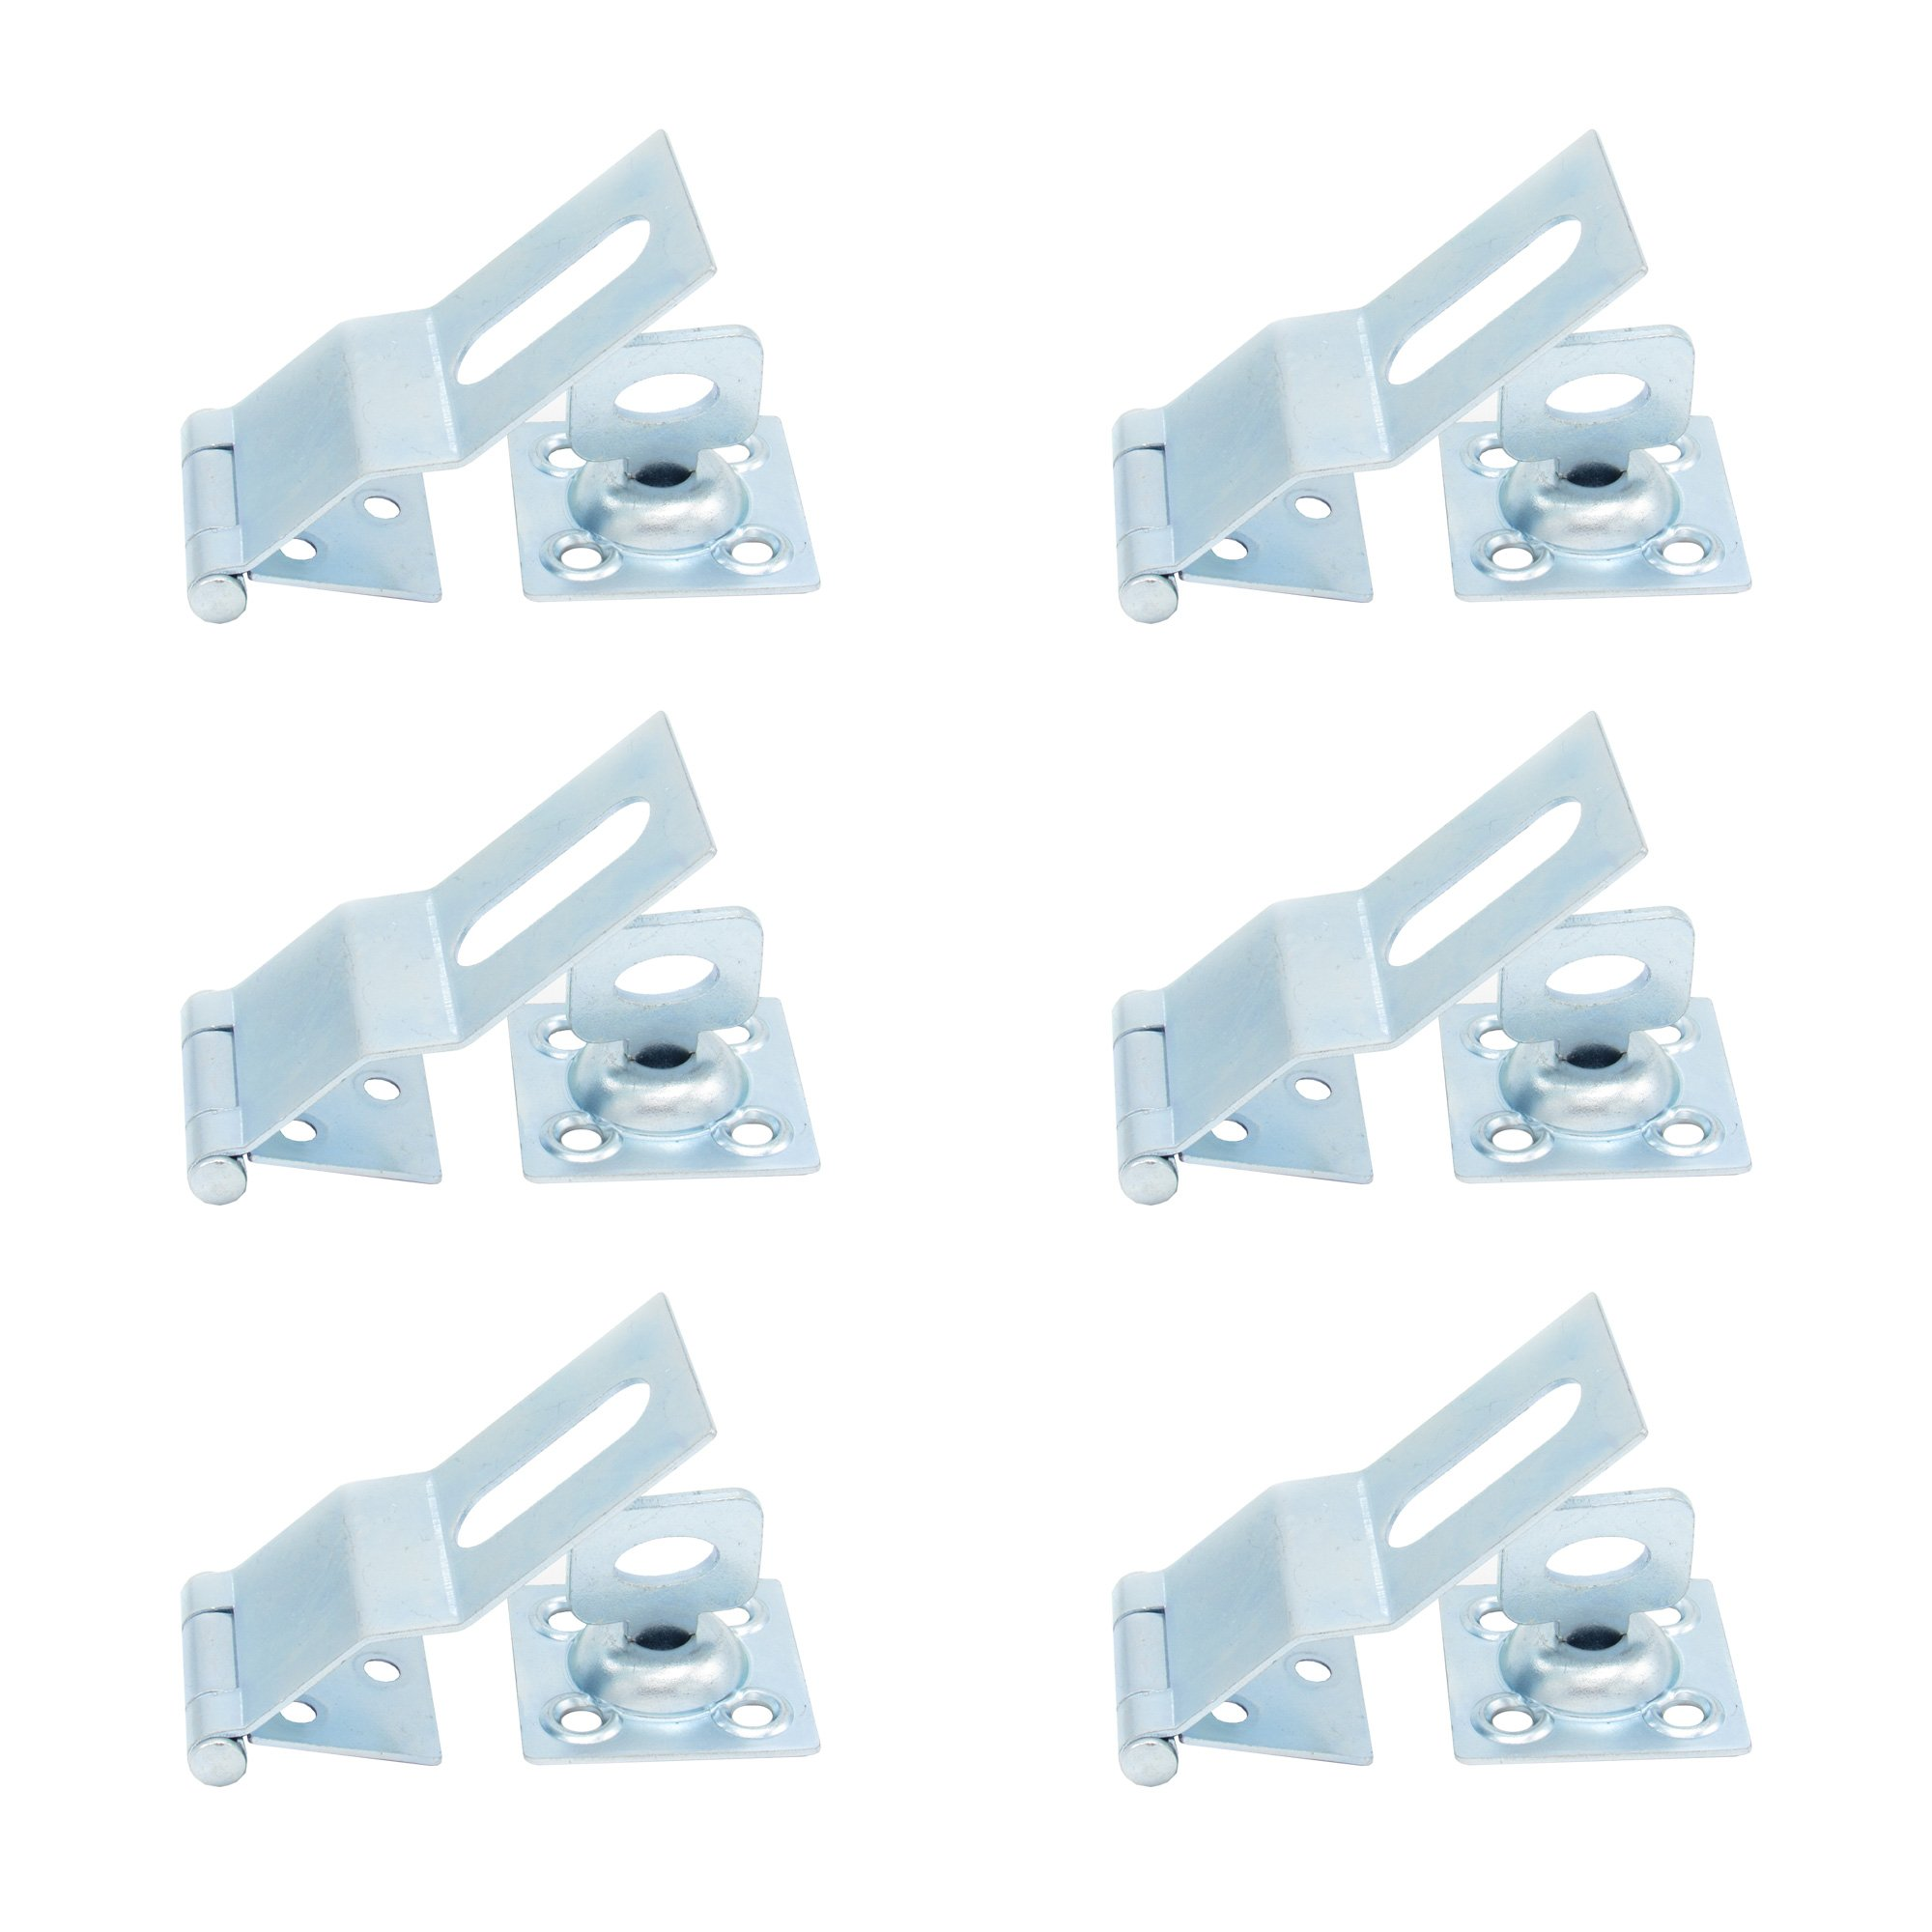 (6 Pack) ELBA Security Hasp 3.5 inches, Heavy Duty Can be Used Indoors and Outdoors on Gates or Windows, for Safety and/or Decorative Combination. Bolt Your House Shut by Adding a Padlock to Hasp!